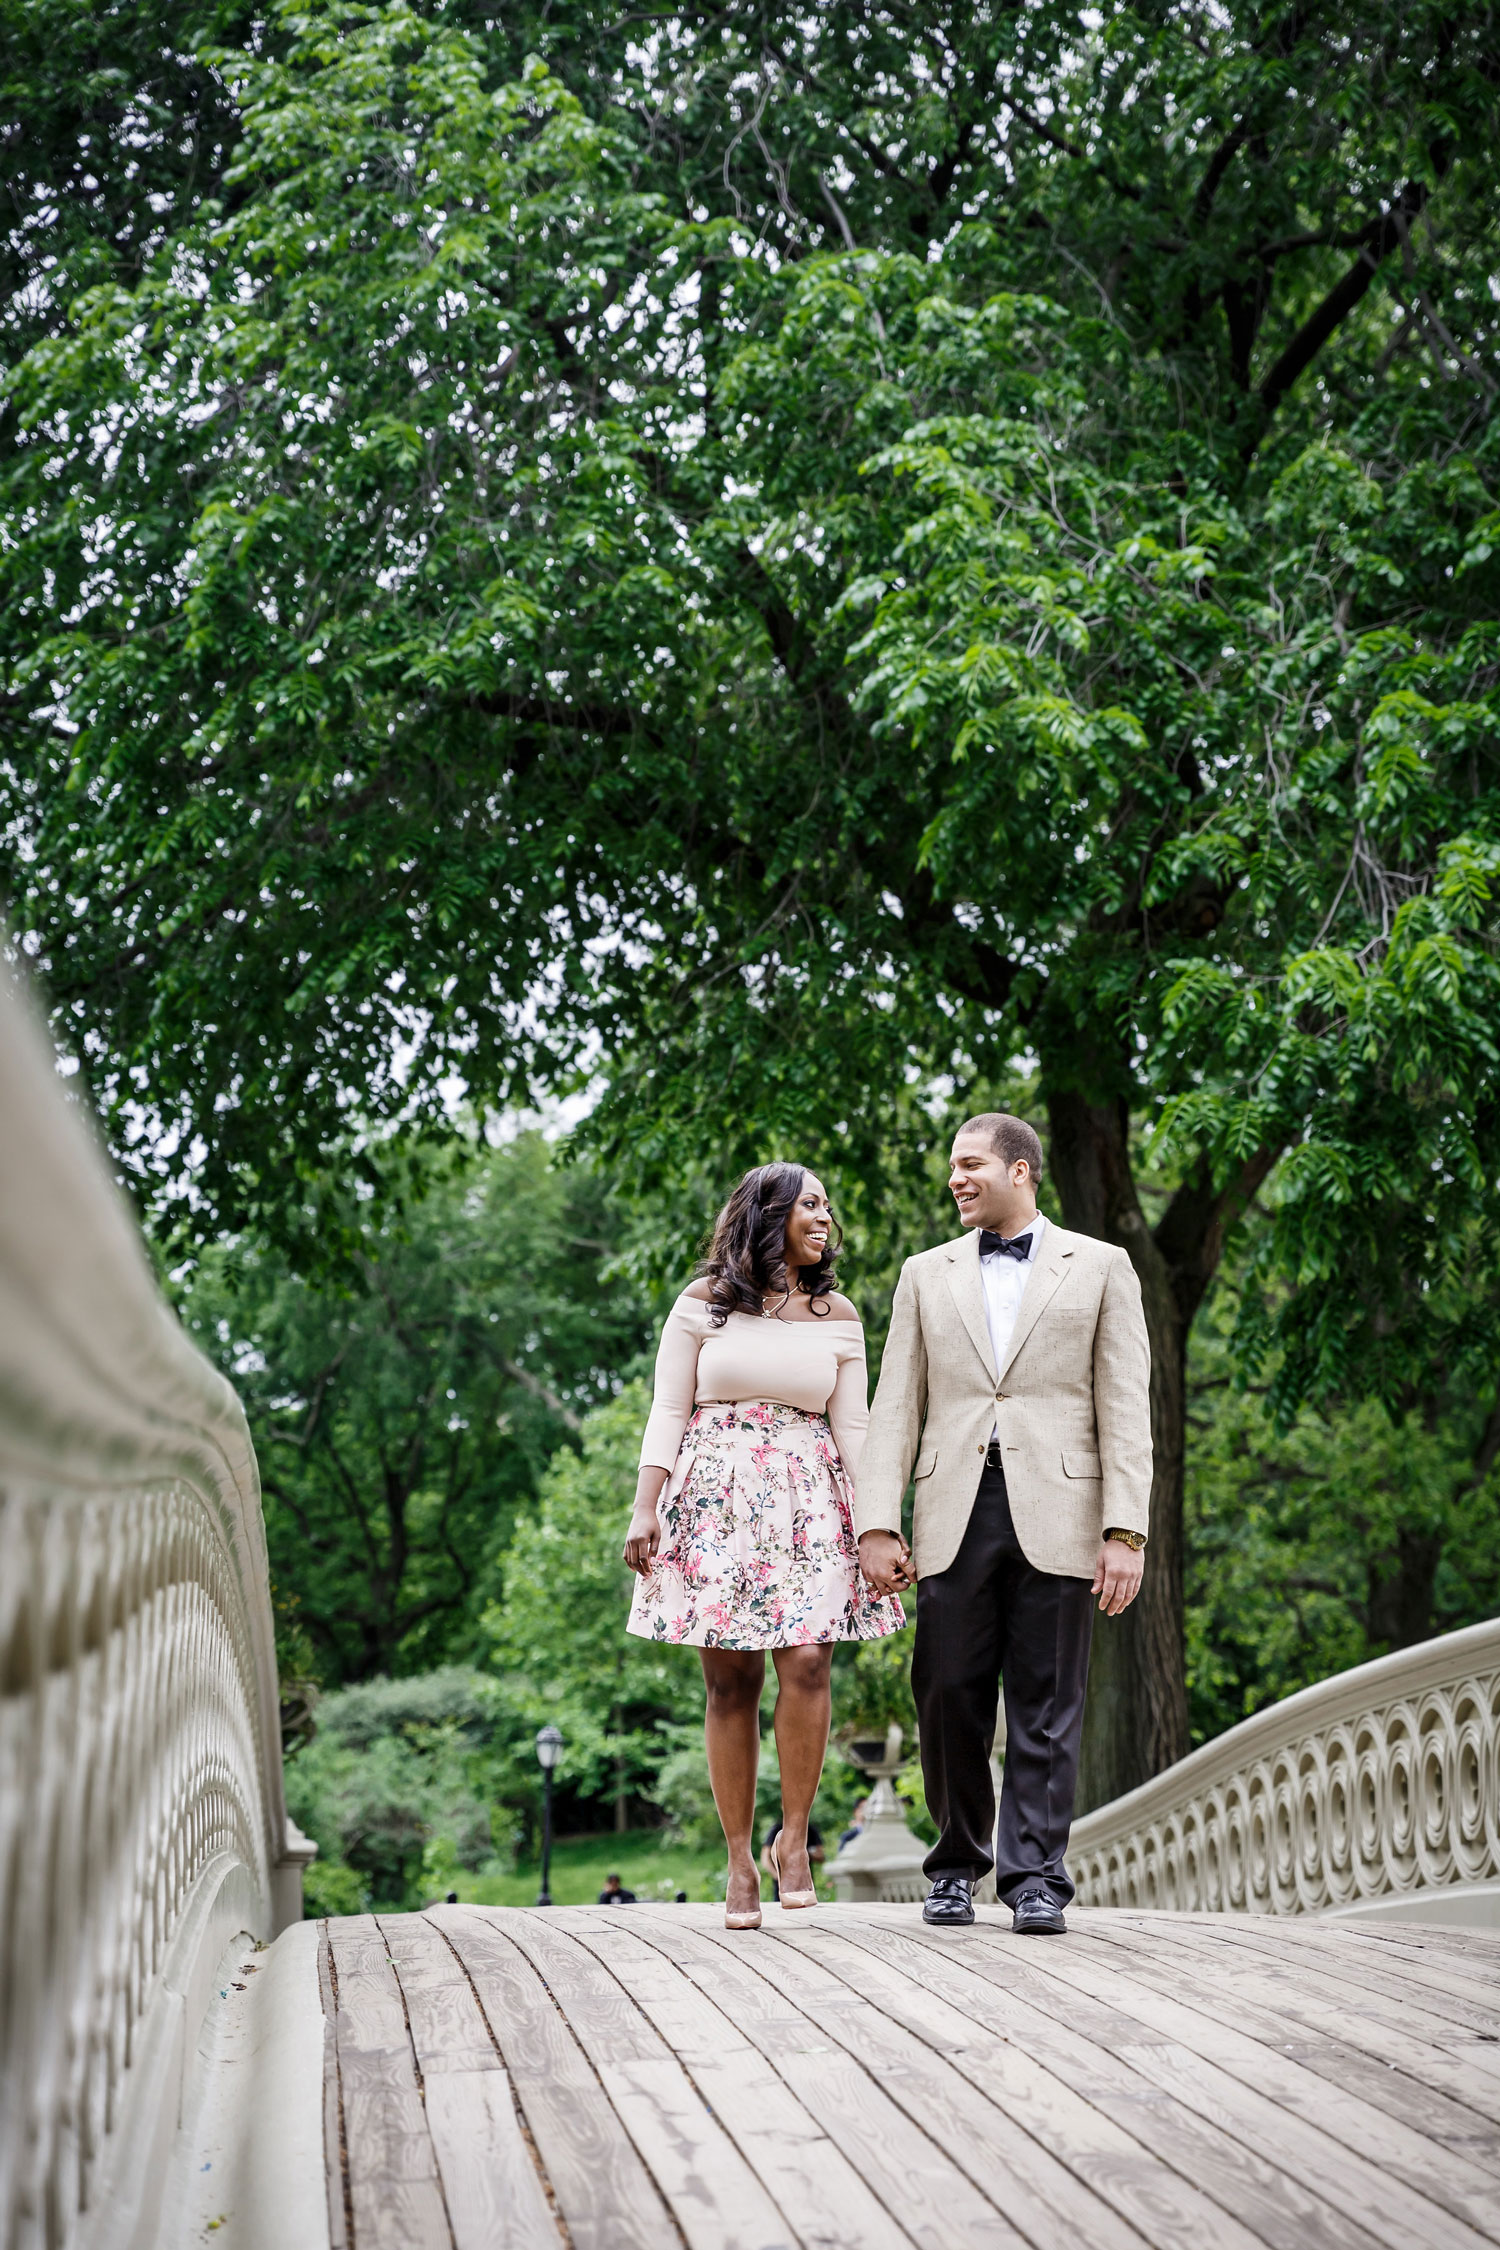 New York City central park engagement session photo by Amy Anaiz walking on bridge